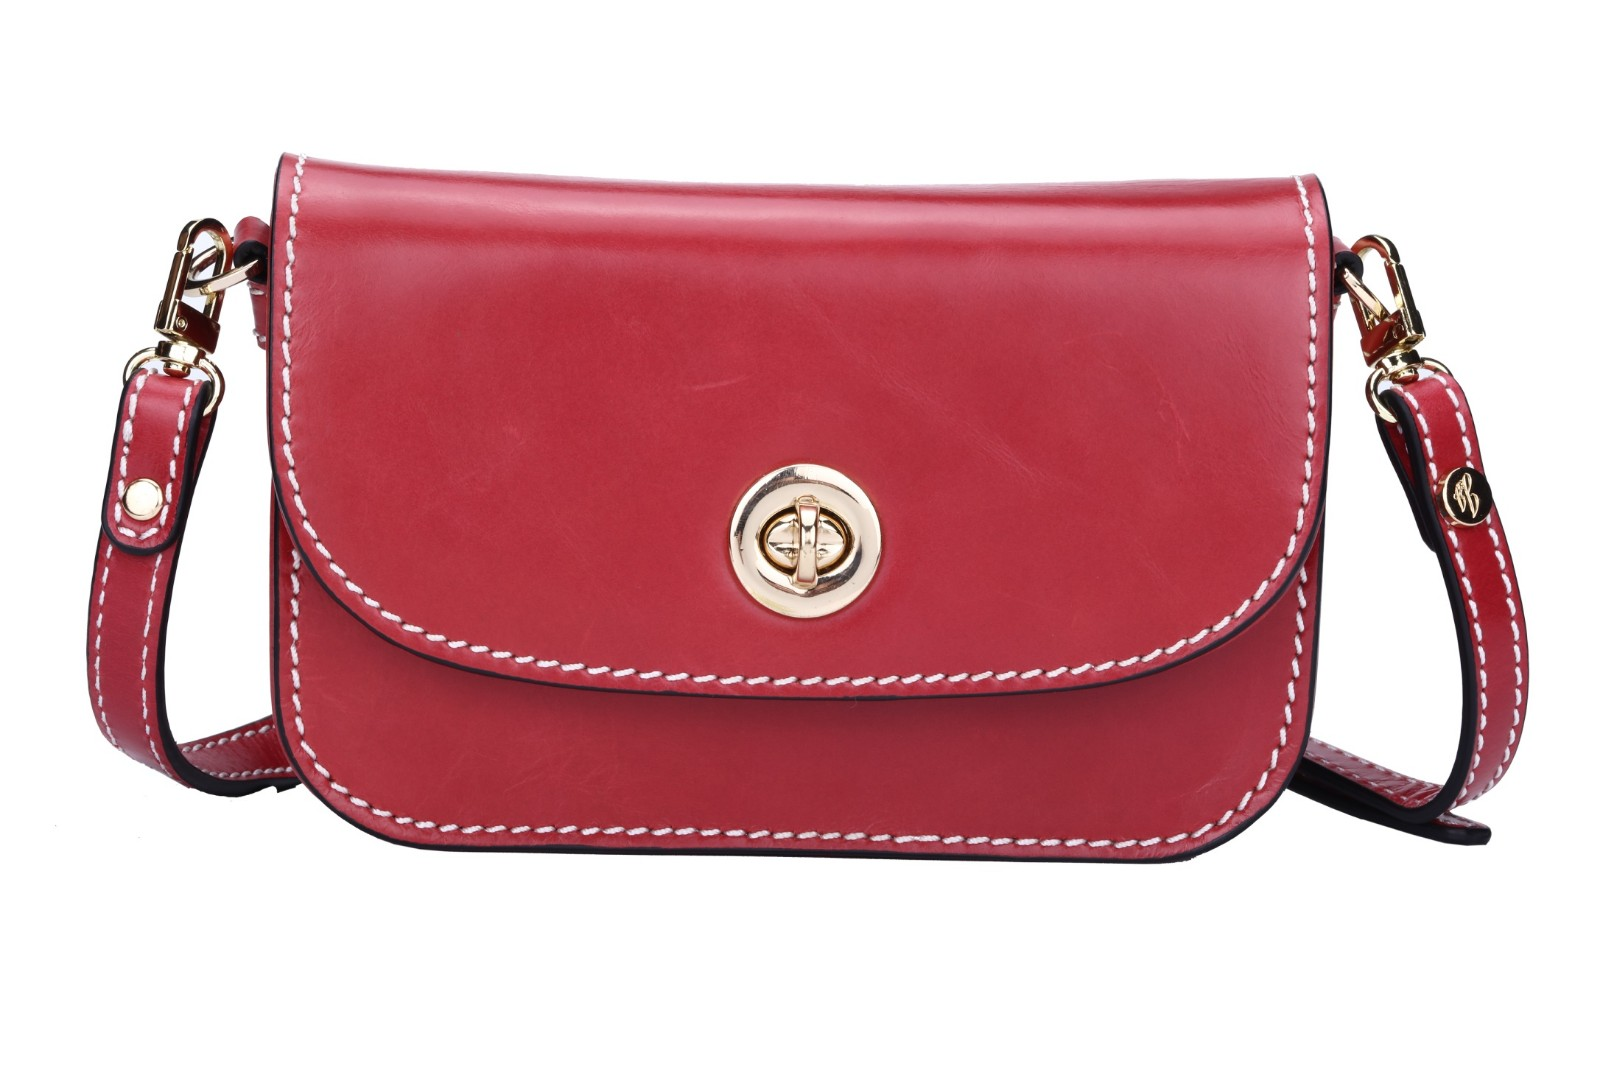 GF bags high-quality evening bags check now cash storage-6